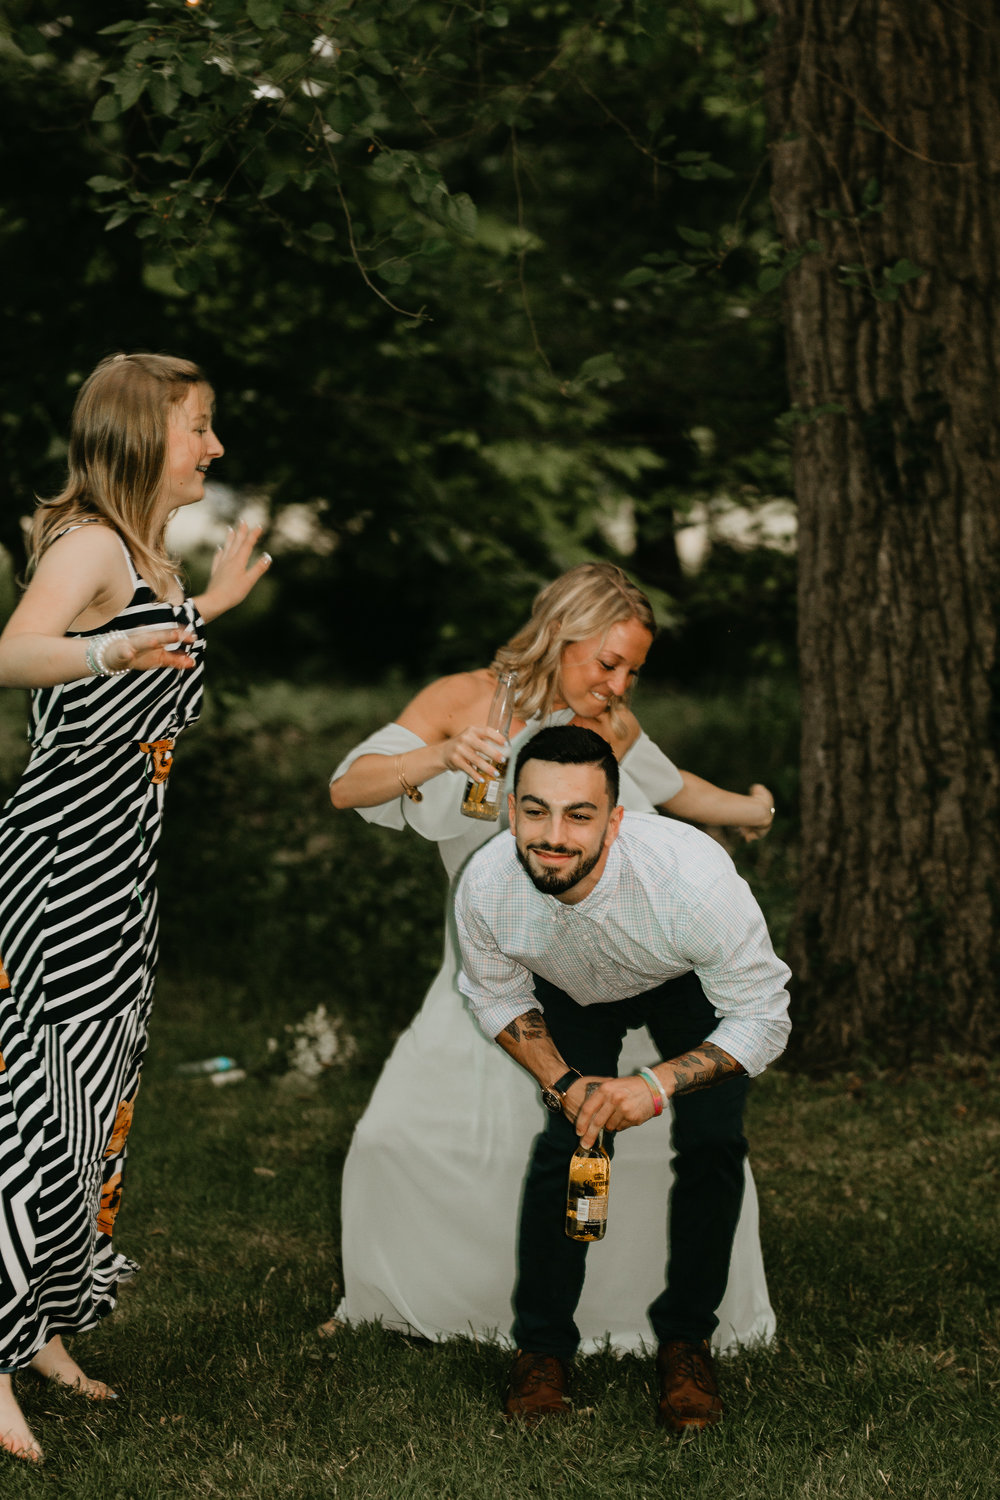 Nicole-Daacke-Photography-pennsylvania-laid-back-outside-backyard-wedding-family-summer-june-maryland-barefoot-bride-woodland-trees-sunset-couple-94.jpg